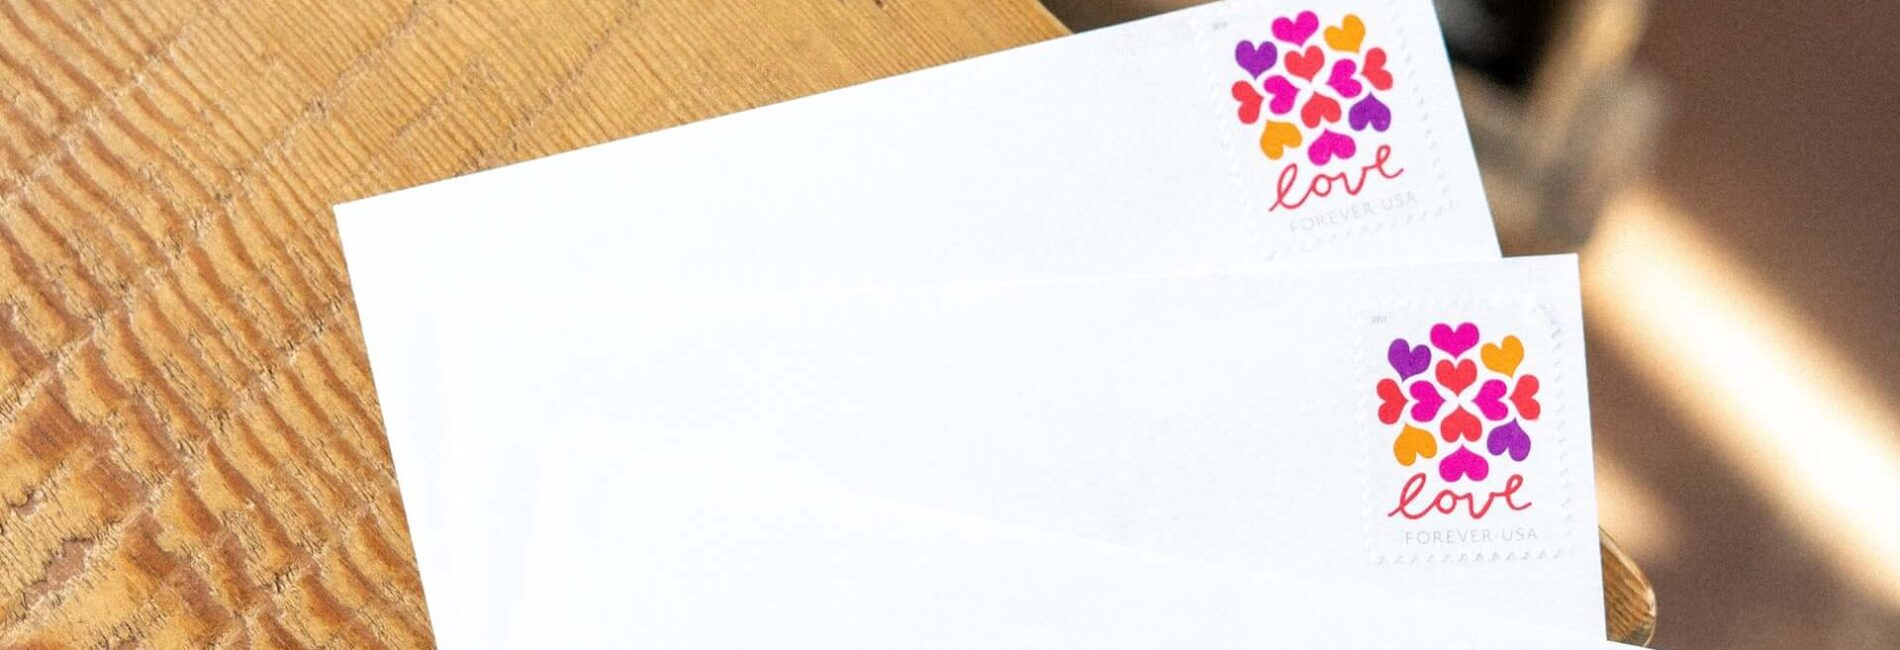 Remembering a Loved One With a Simple Letter